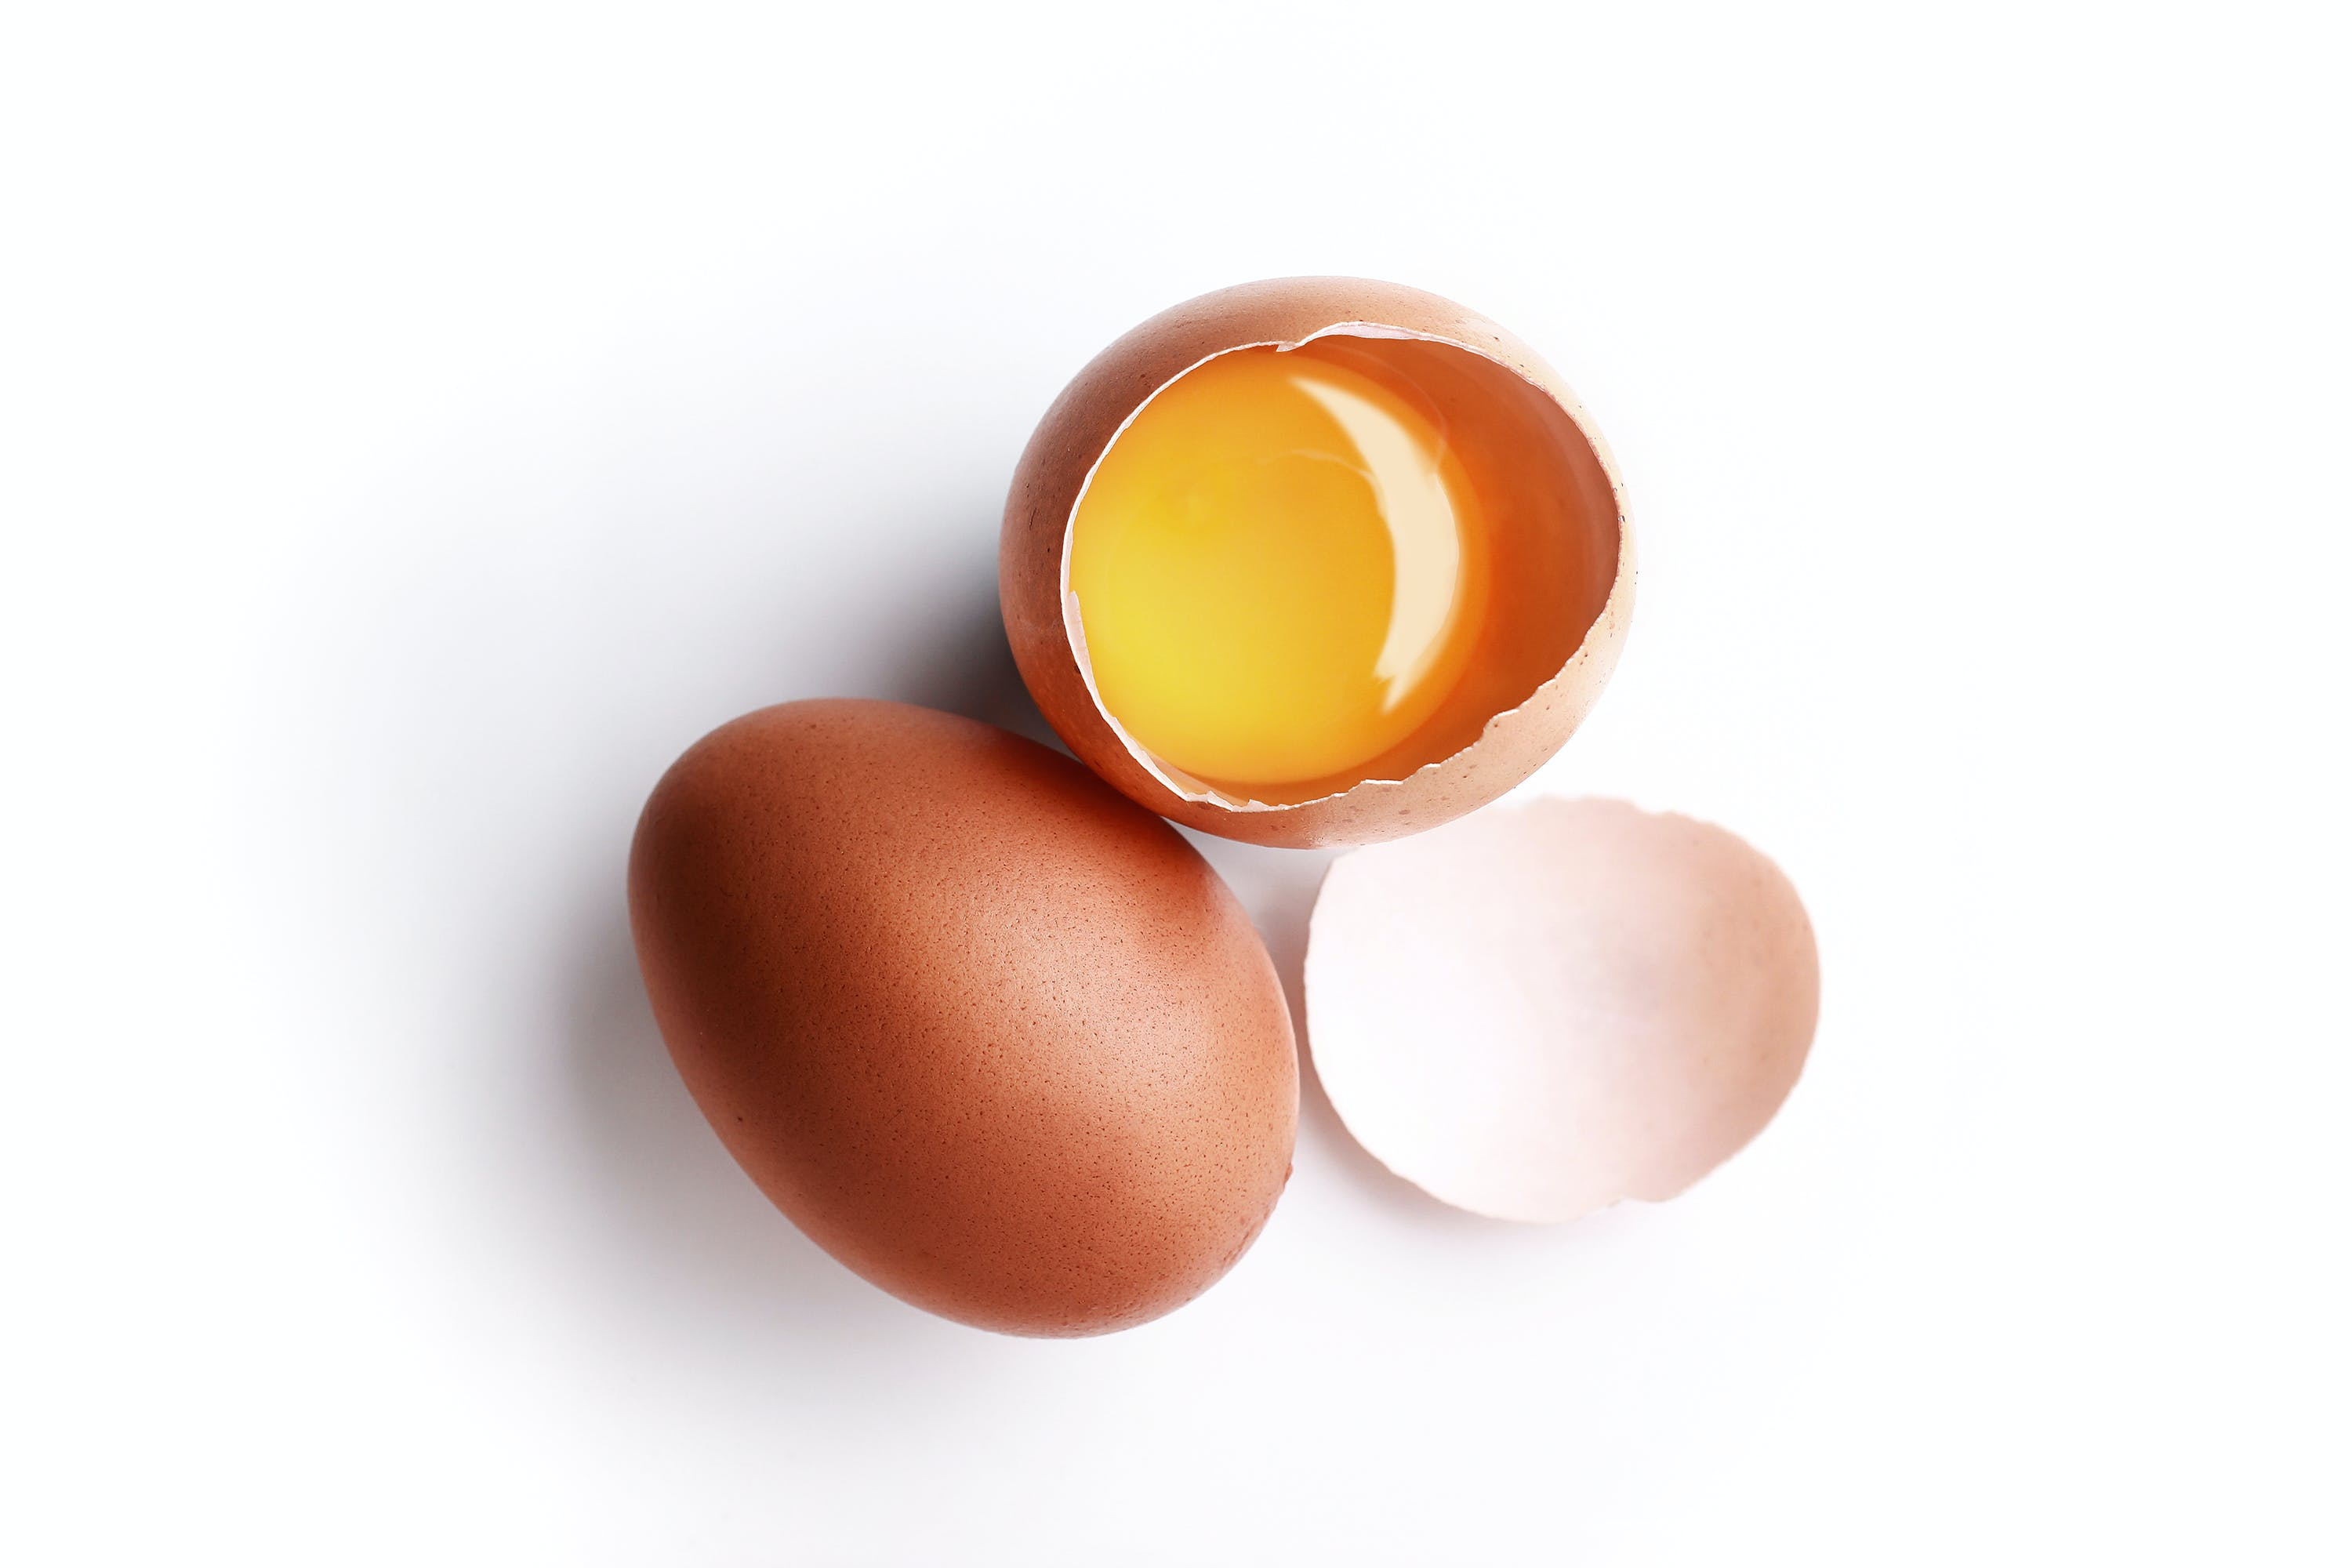 Free stock photo of Chicken egg, egg yolk, eggs